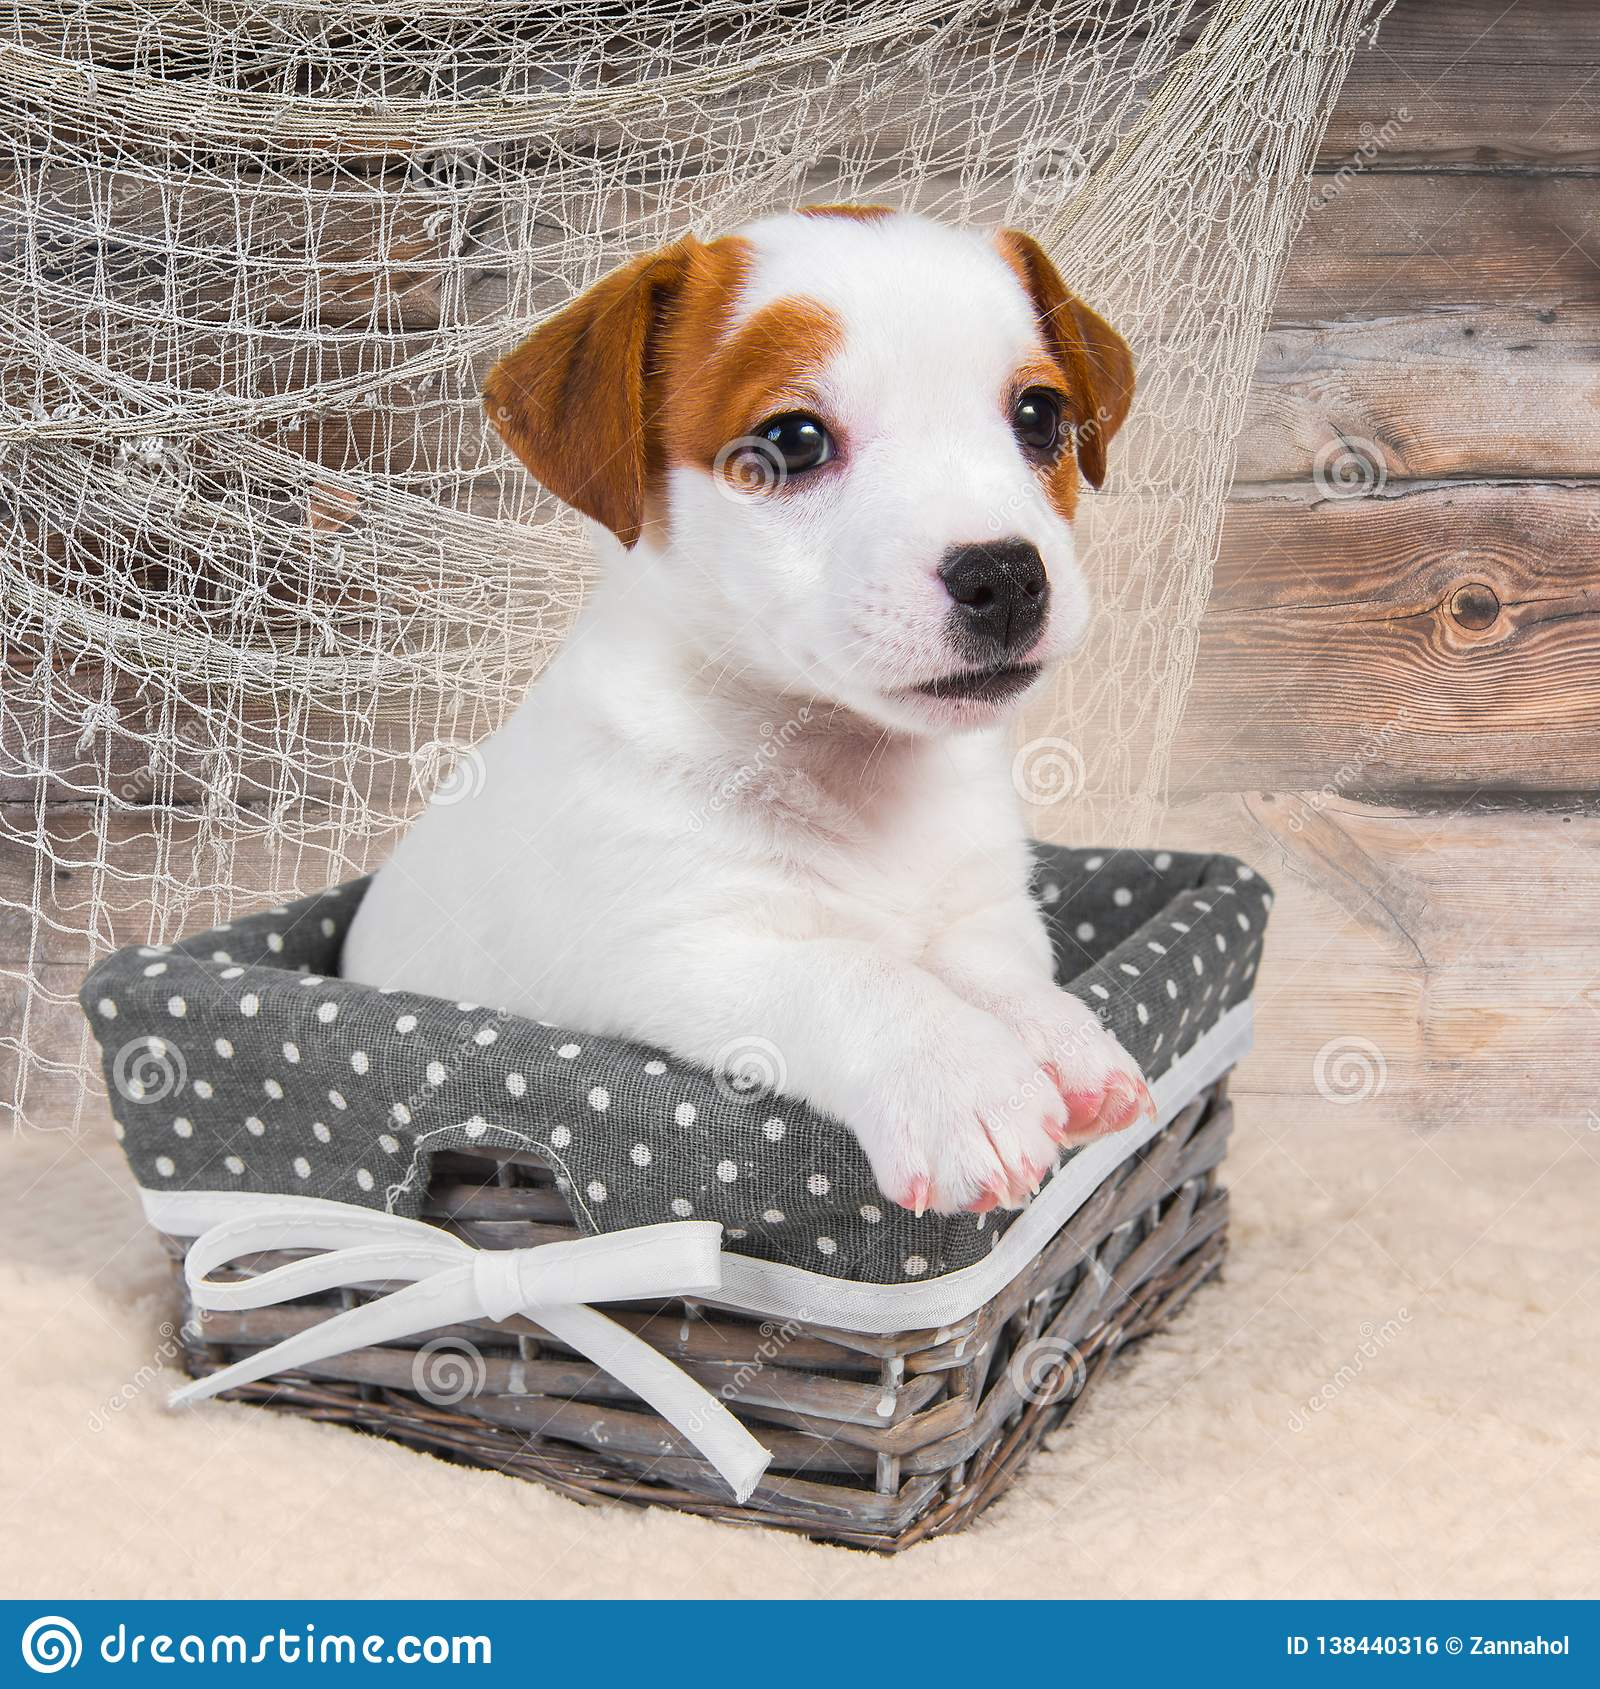 Jack Russell Terrier puppy dog in the basket on the wooden background with a fishing net.